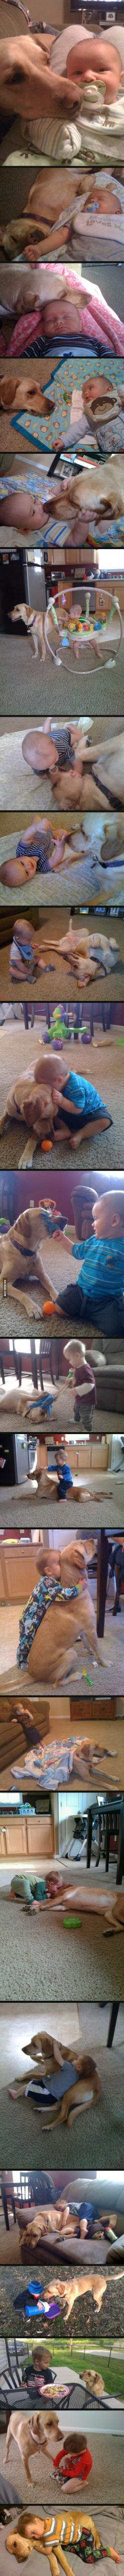 Absolutely precious: Sweet, Best Friends, Pet, My Heart, Baby, 1 2 Years, Dog, Kid, Animal